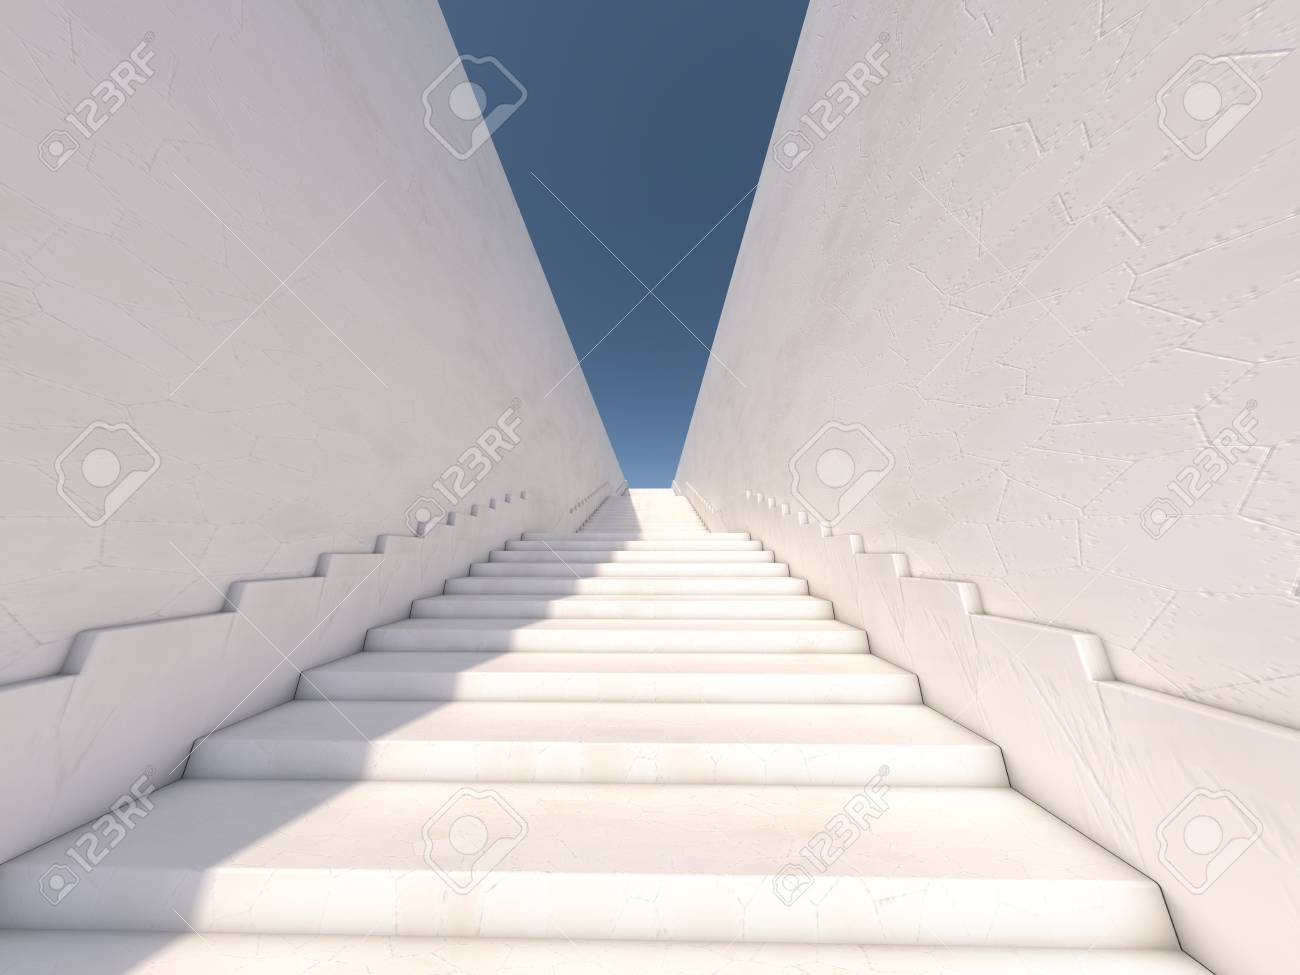 Architectural Concept With Stairs. 3D Rendering Stock Photo   74918574